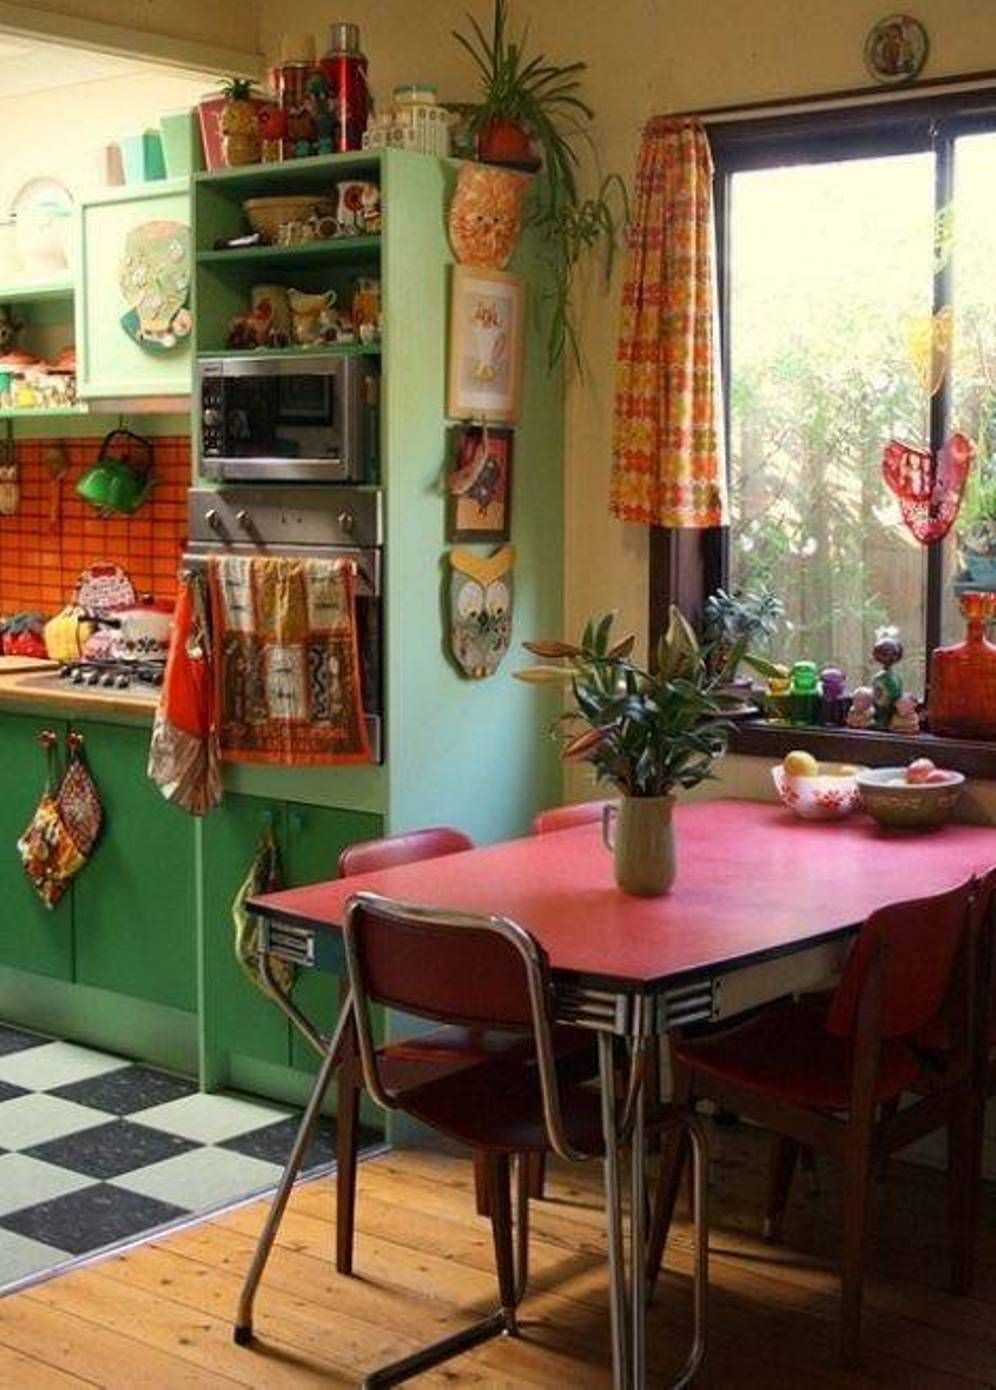 Vintage home interior pictures interior bohemian style for Home dekoration